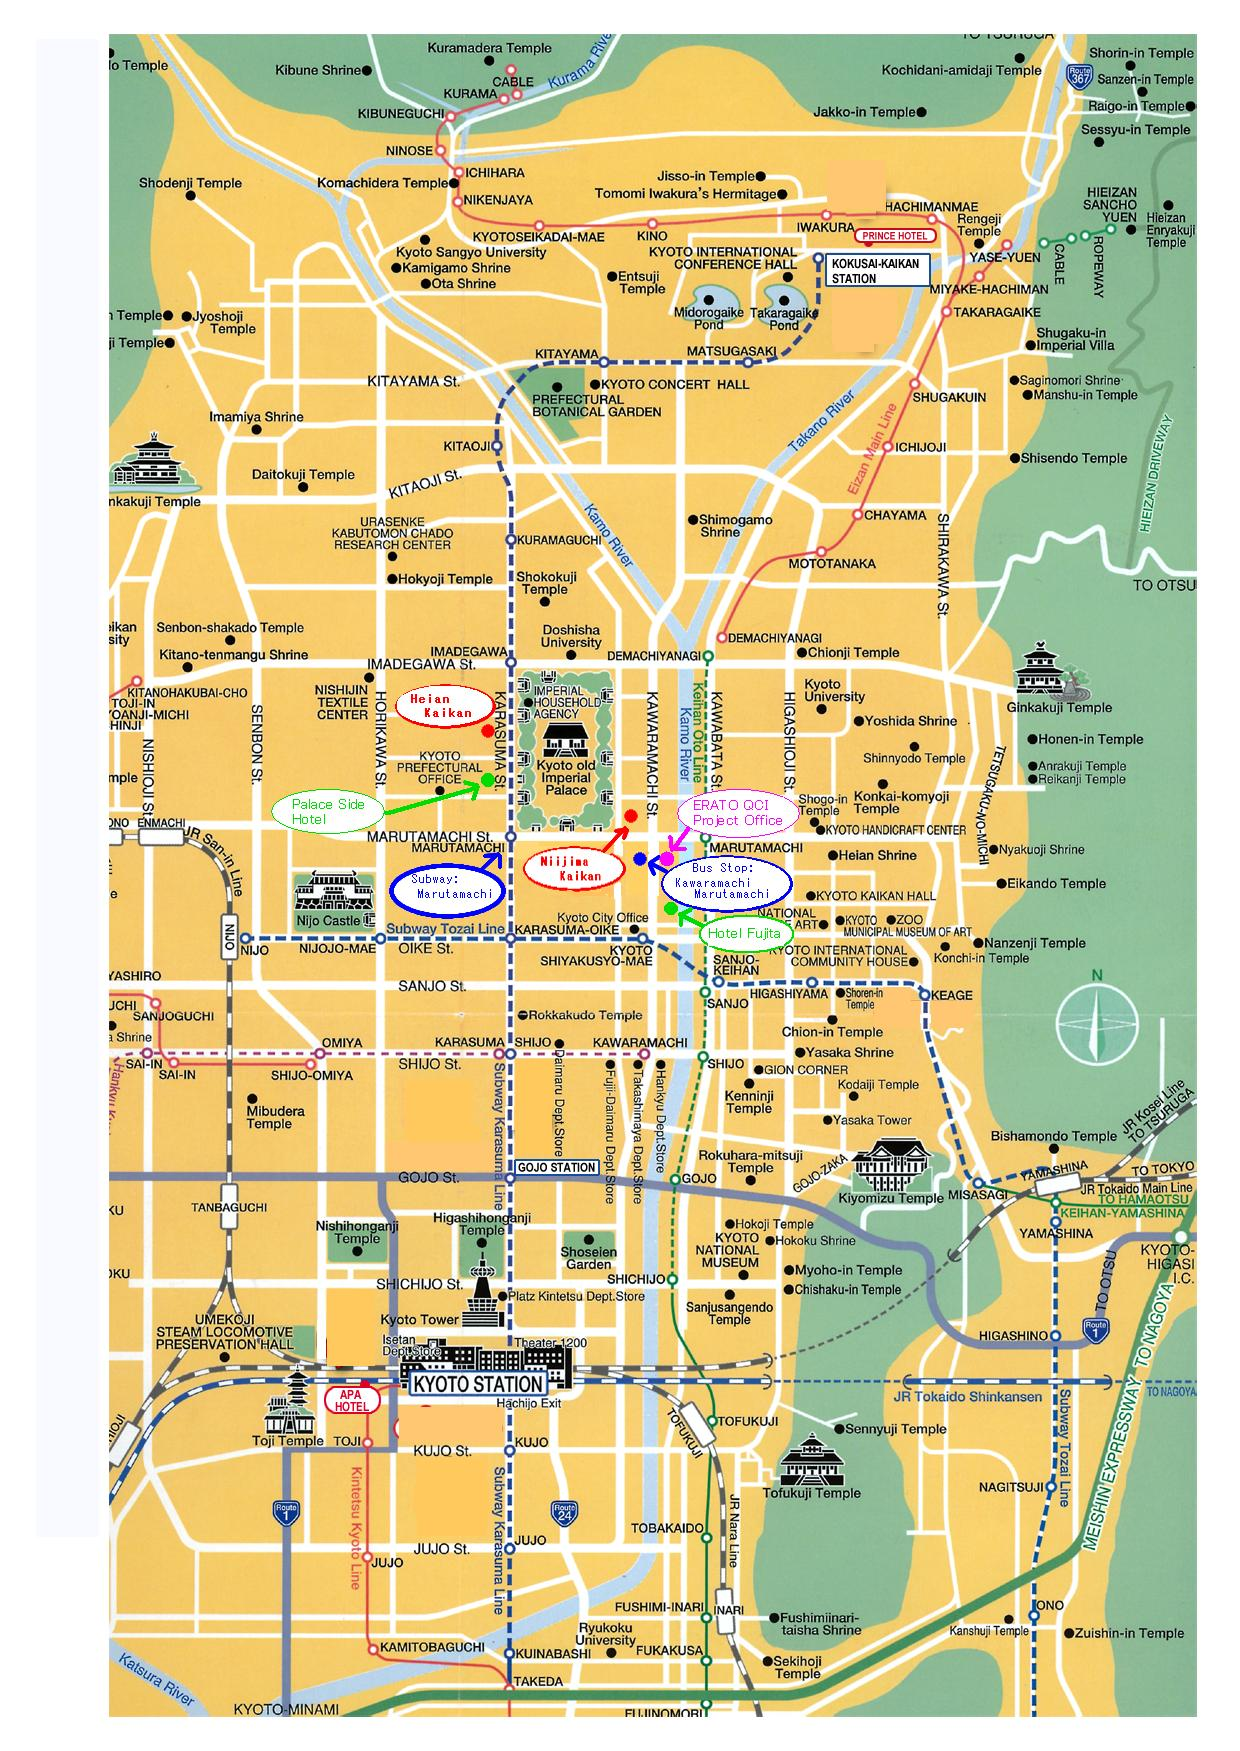 Kyoto city tourist map see map details from www qci jst go jp